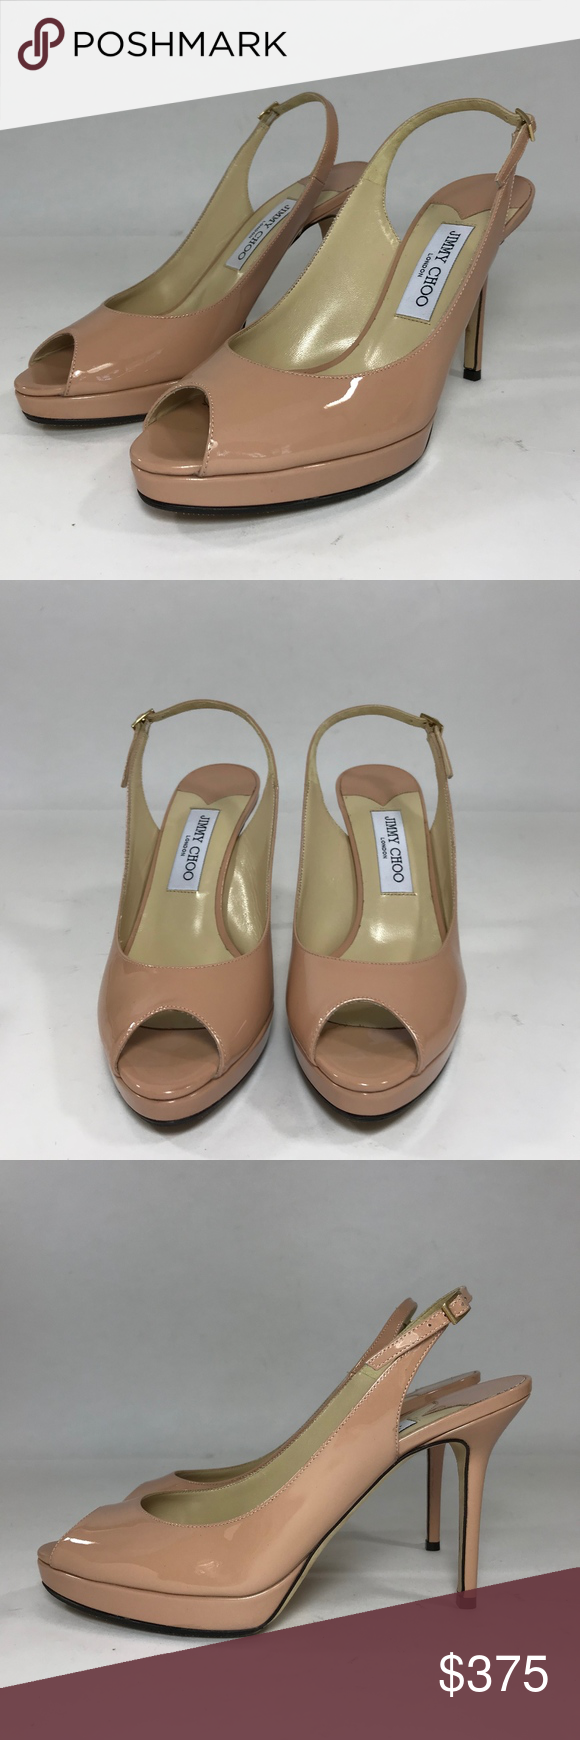 6b9df4fb4654 Jimmy Choo Nova Slingback Pump in Blush Patent MODEL - Jimmy Choo Nova  Slingback Pump in Blush Patent SKU - 1697 ORIGINAL RETAIL PRICE - 665 +tax  SIZE - US ...